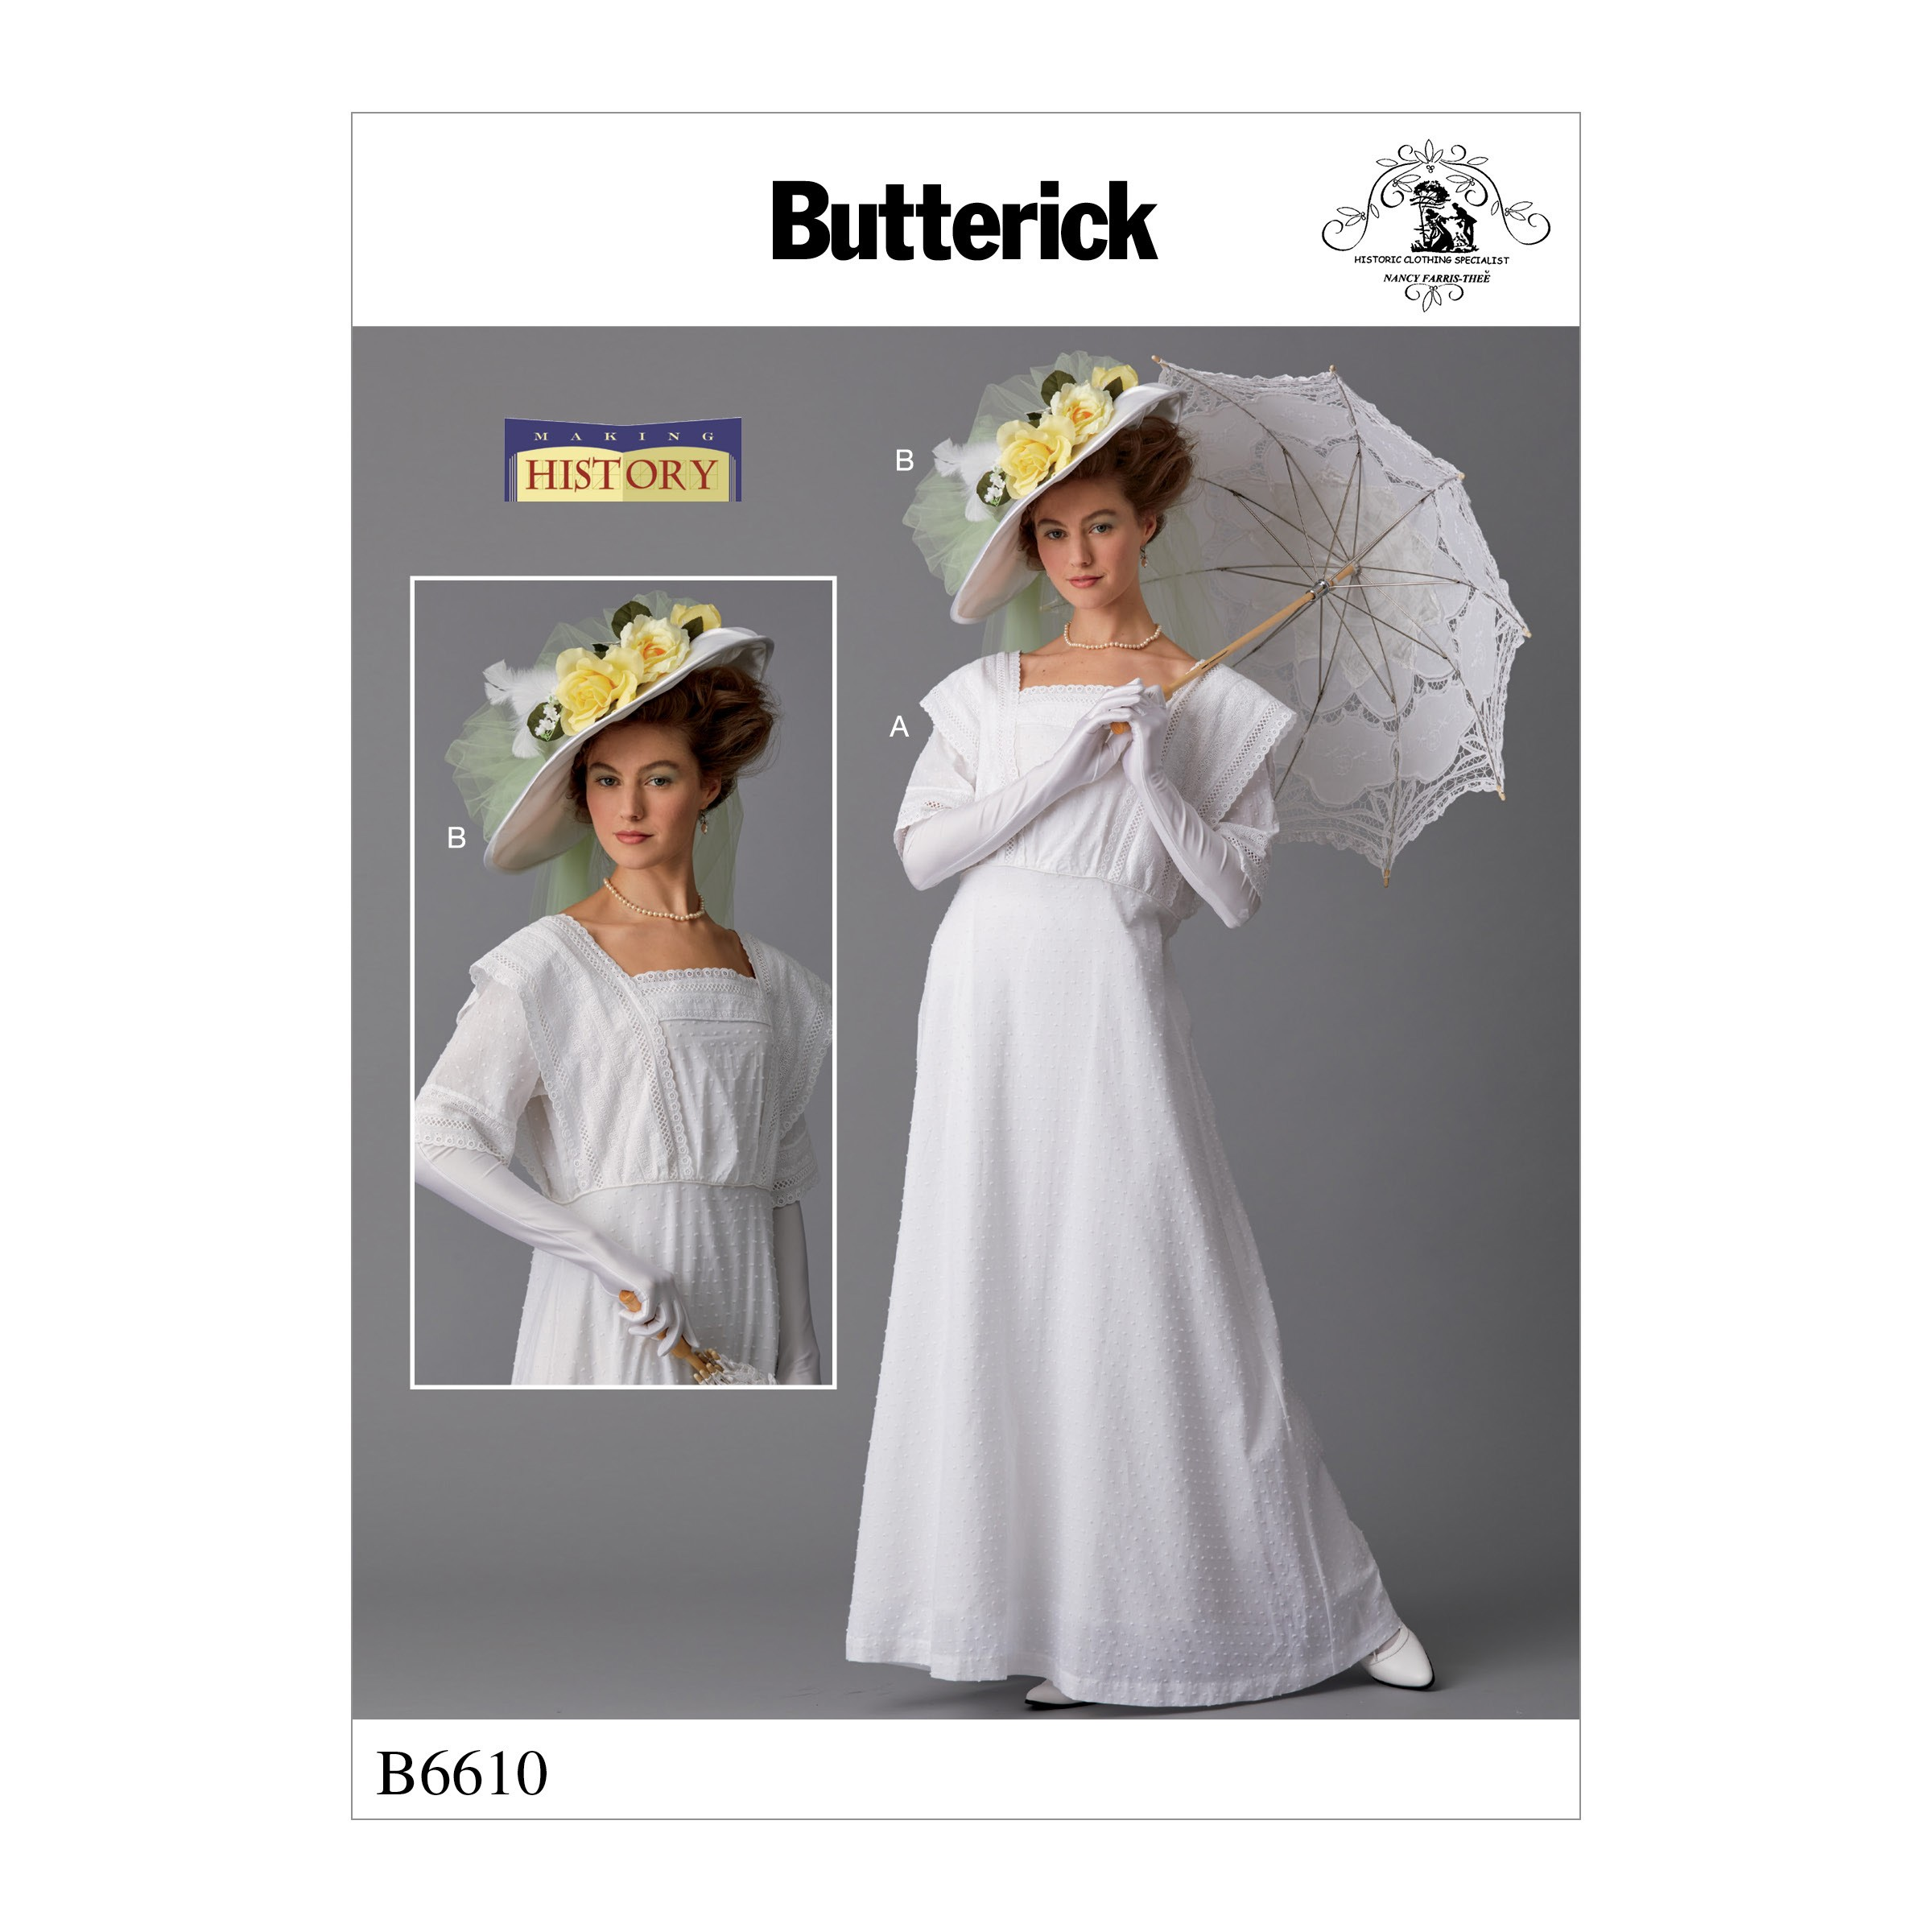 Butterick Sewing Pattern 6610 Misses' Vintage Period Dress and Hat